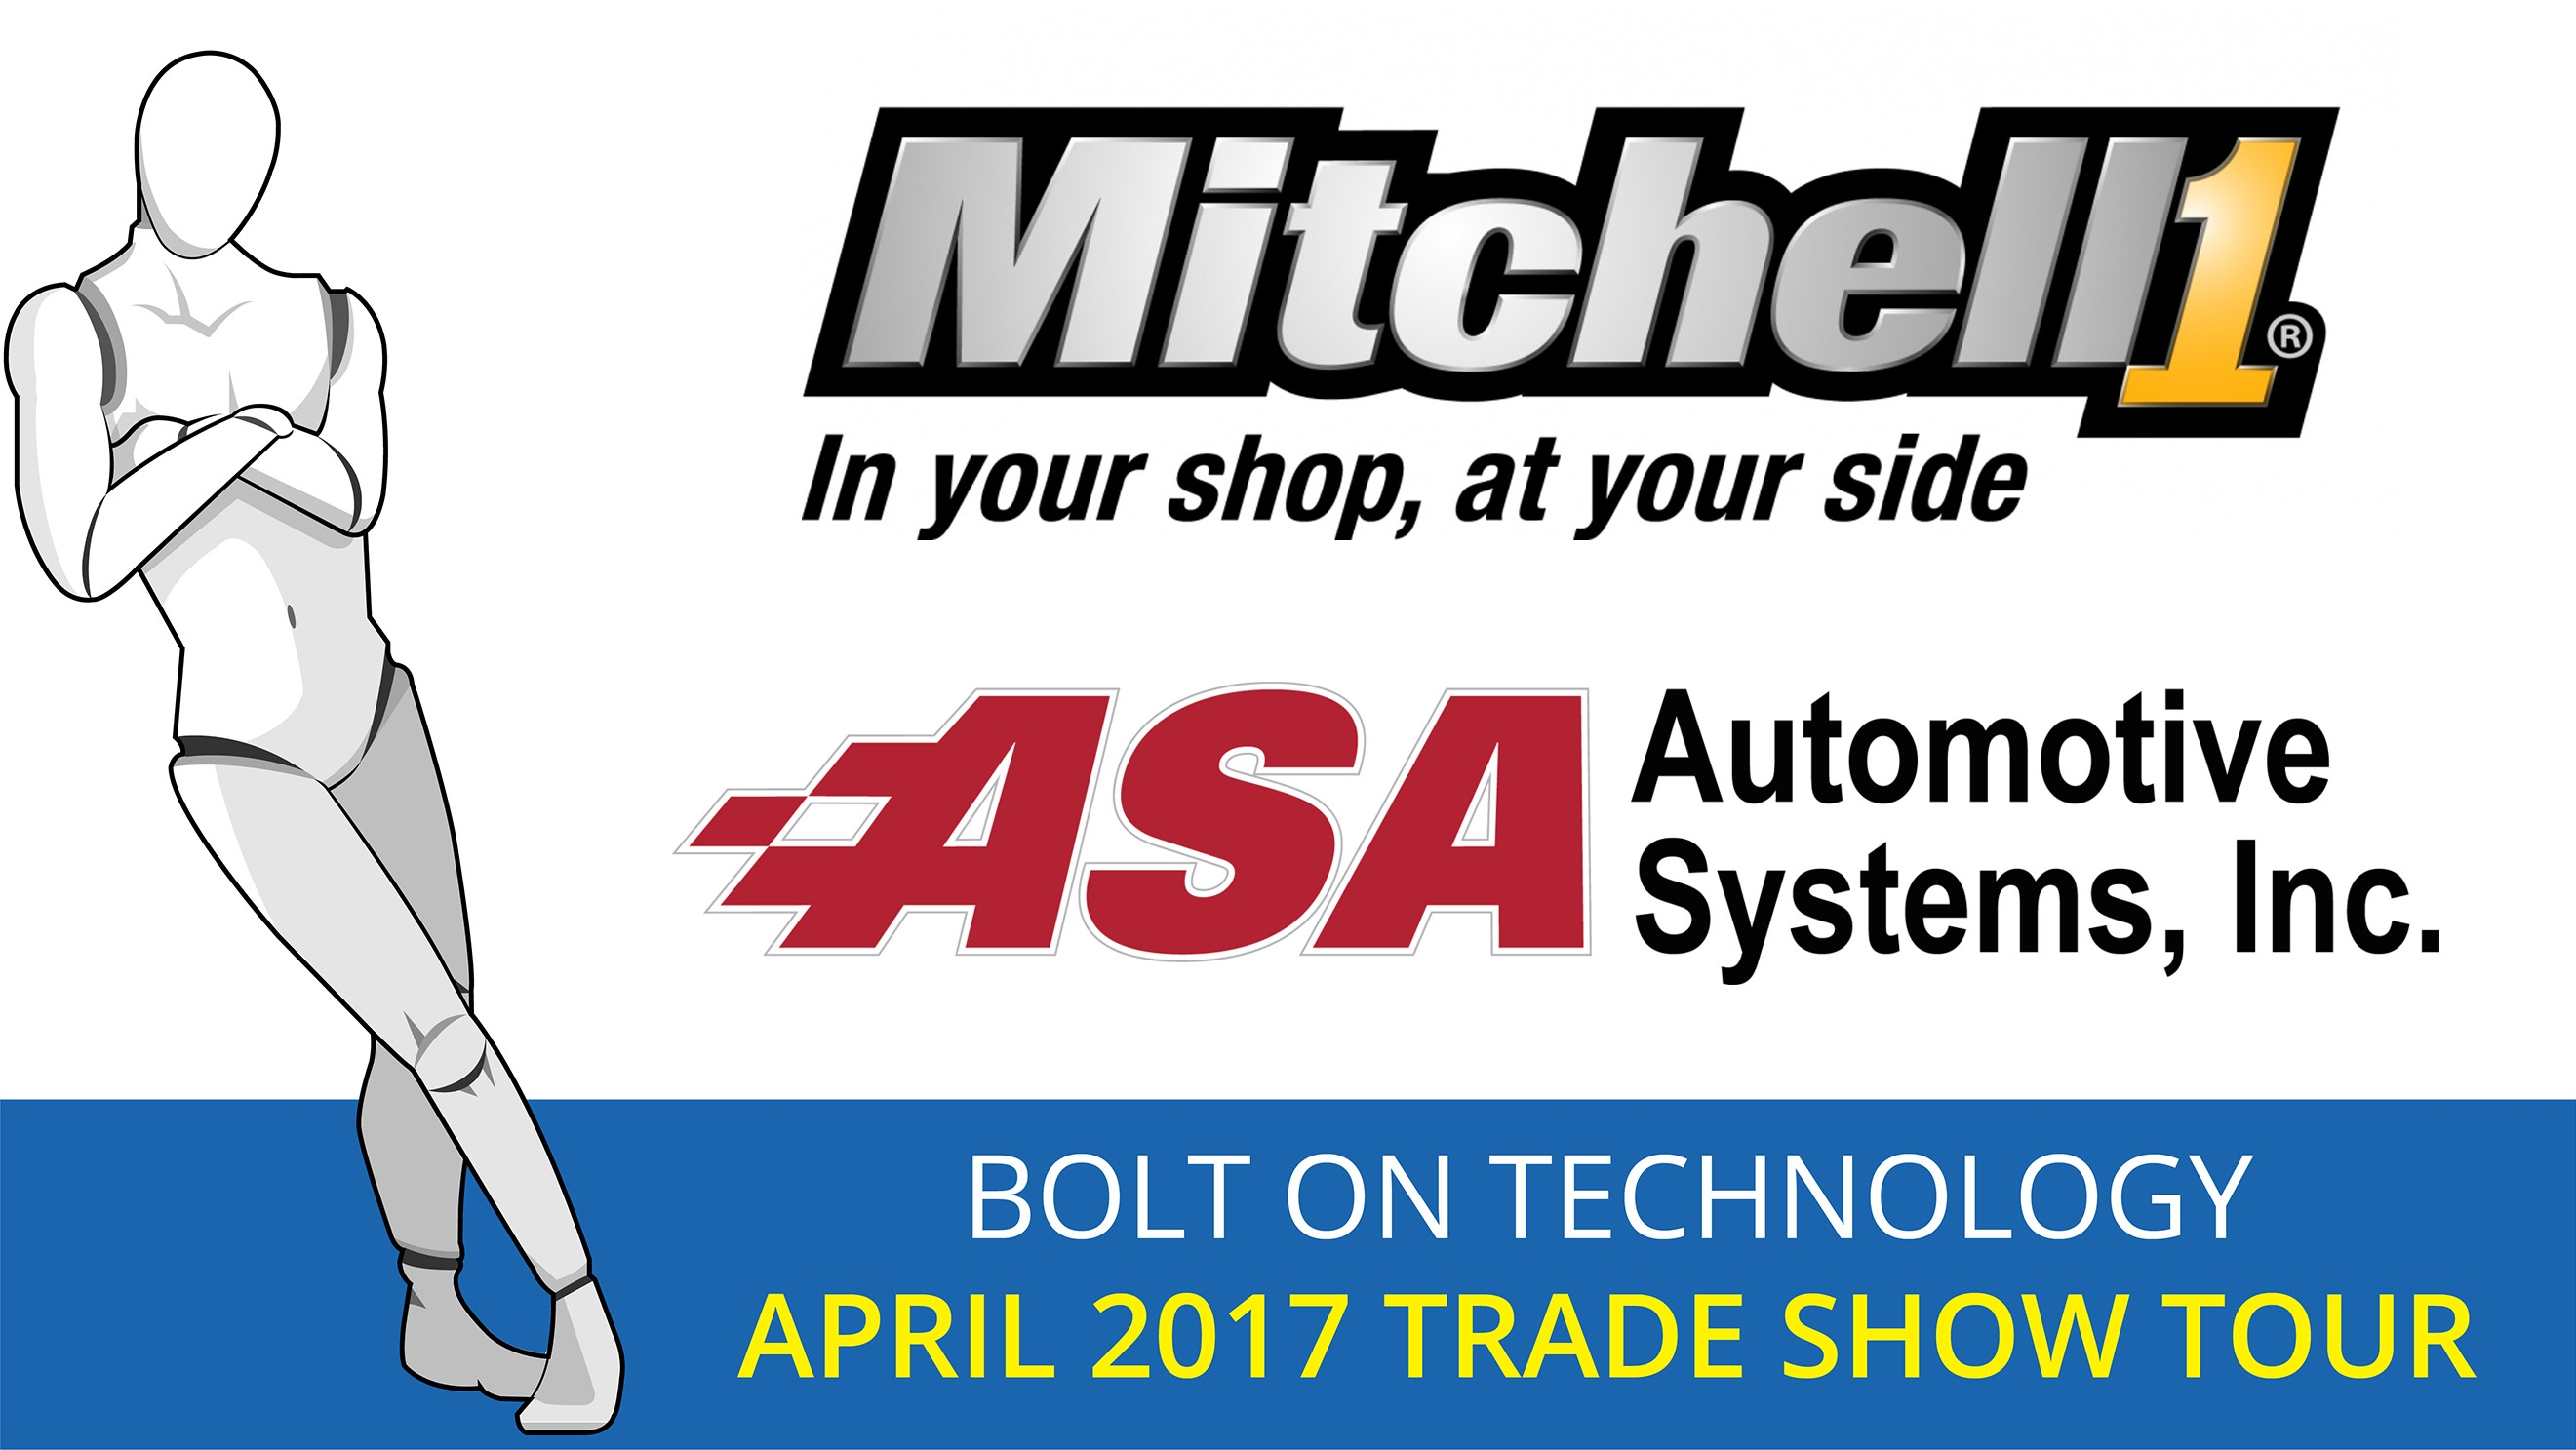 April 2017 Trade Show Schedule